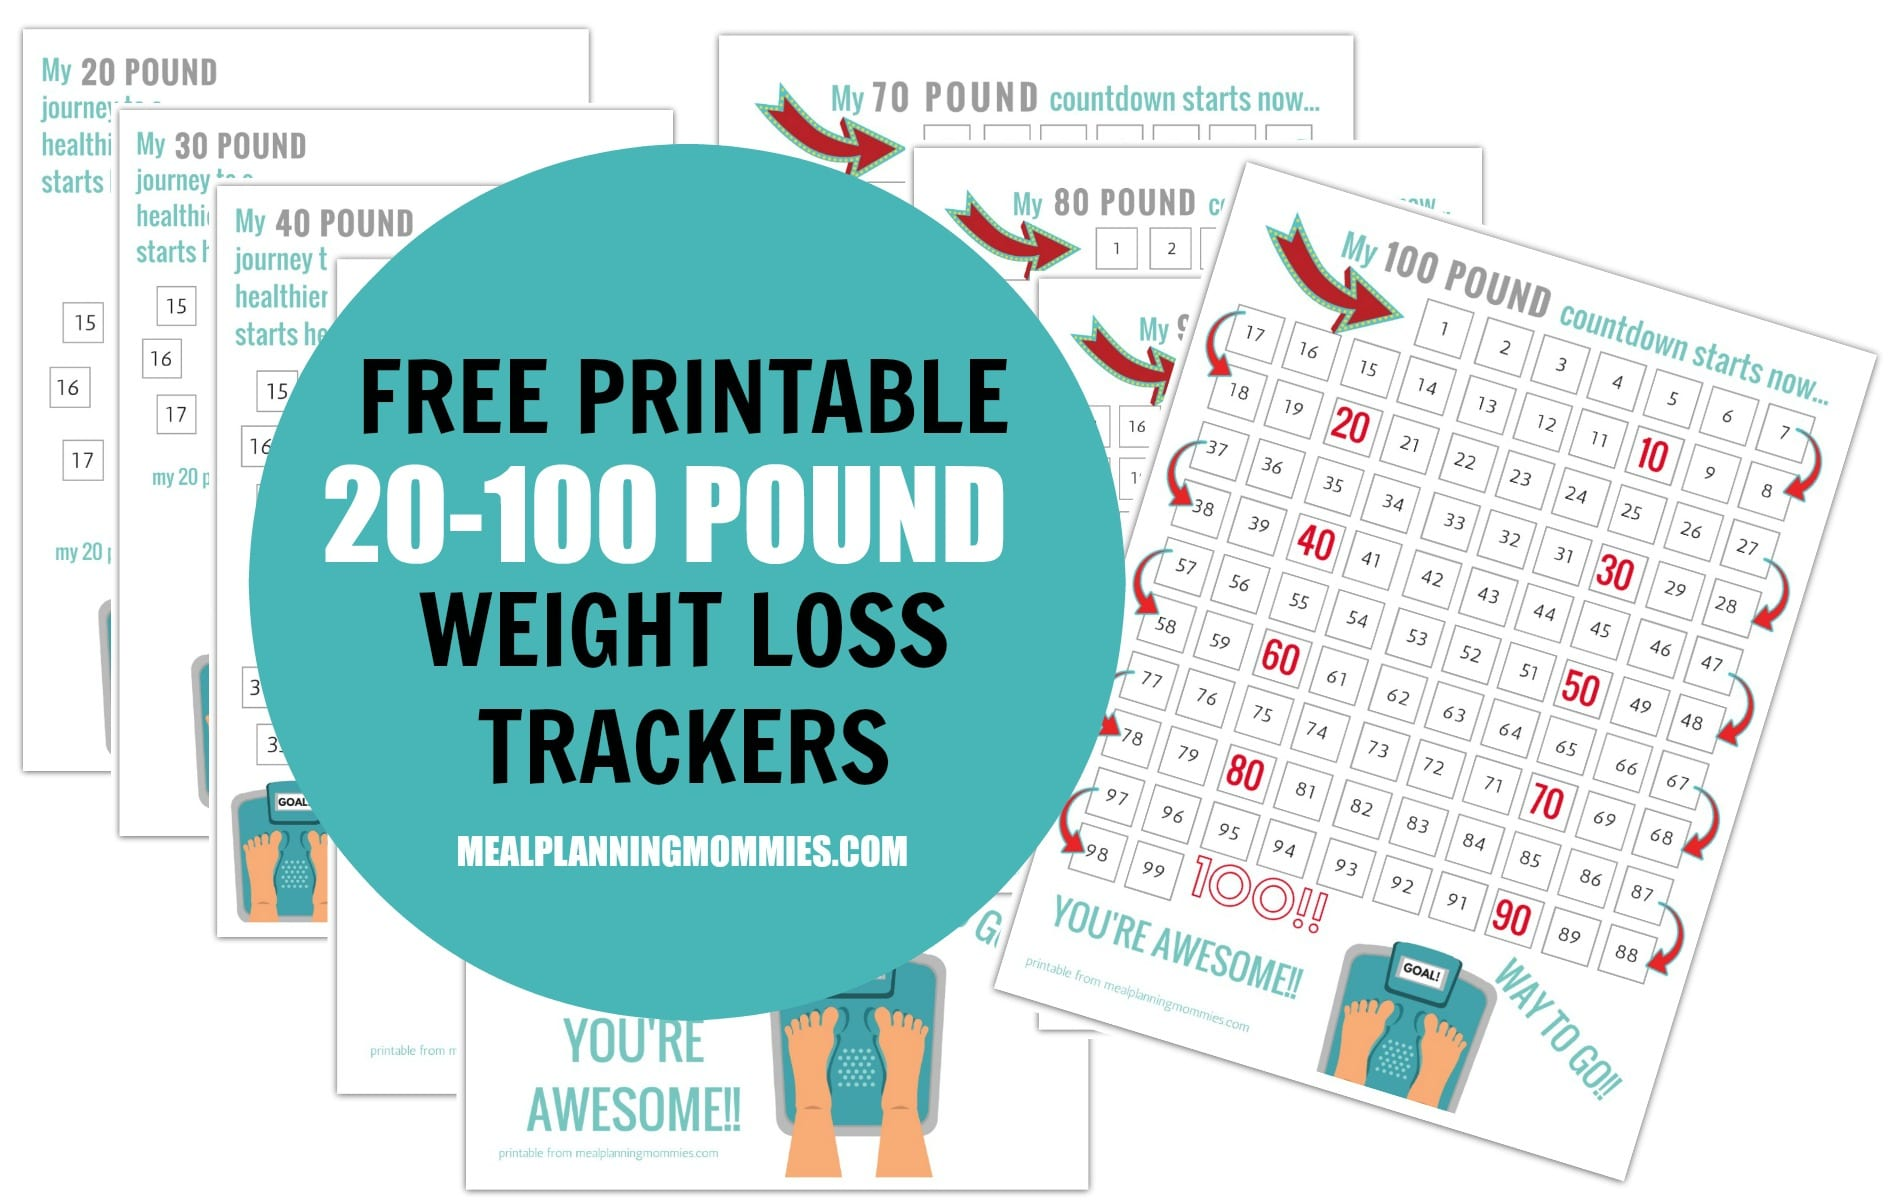 photo regarding Free Printable Weight Loss Planner referred to as Cost-free Printable 20-100 Pound Excess weight Reduction Trackers - Supper